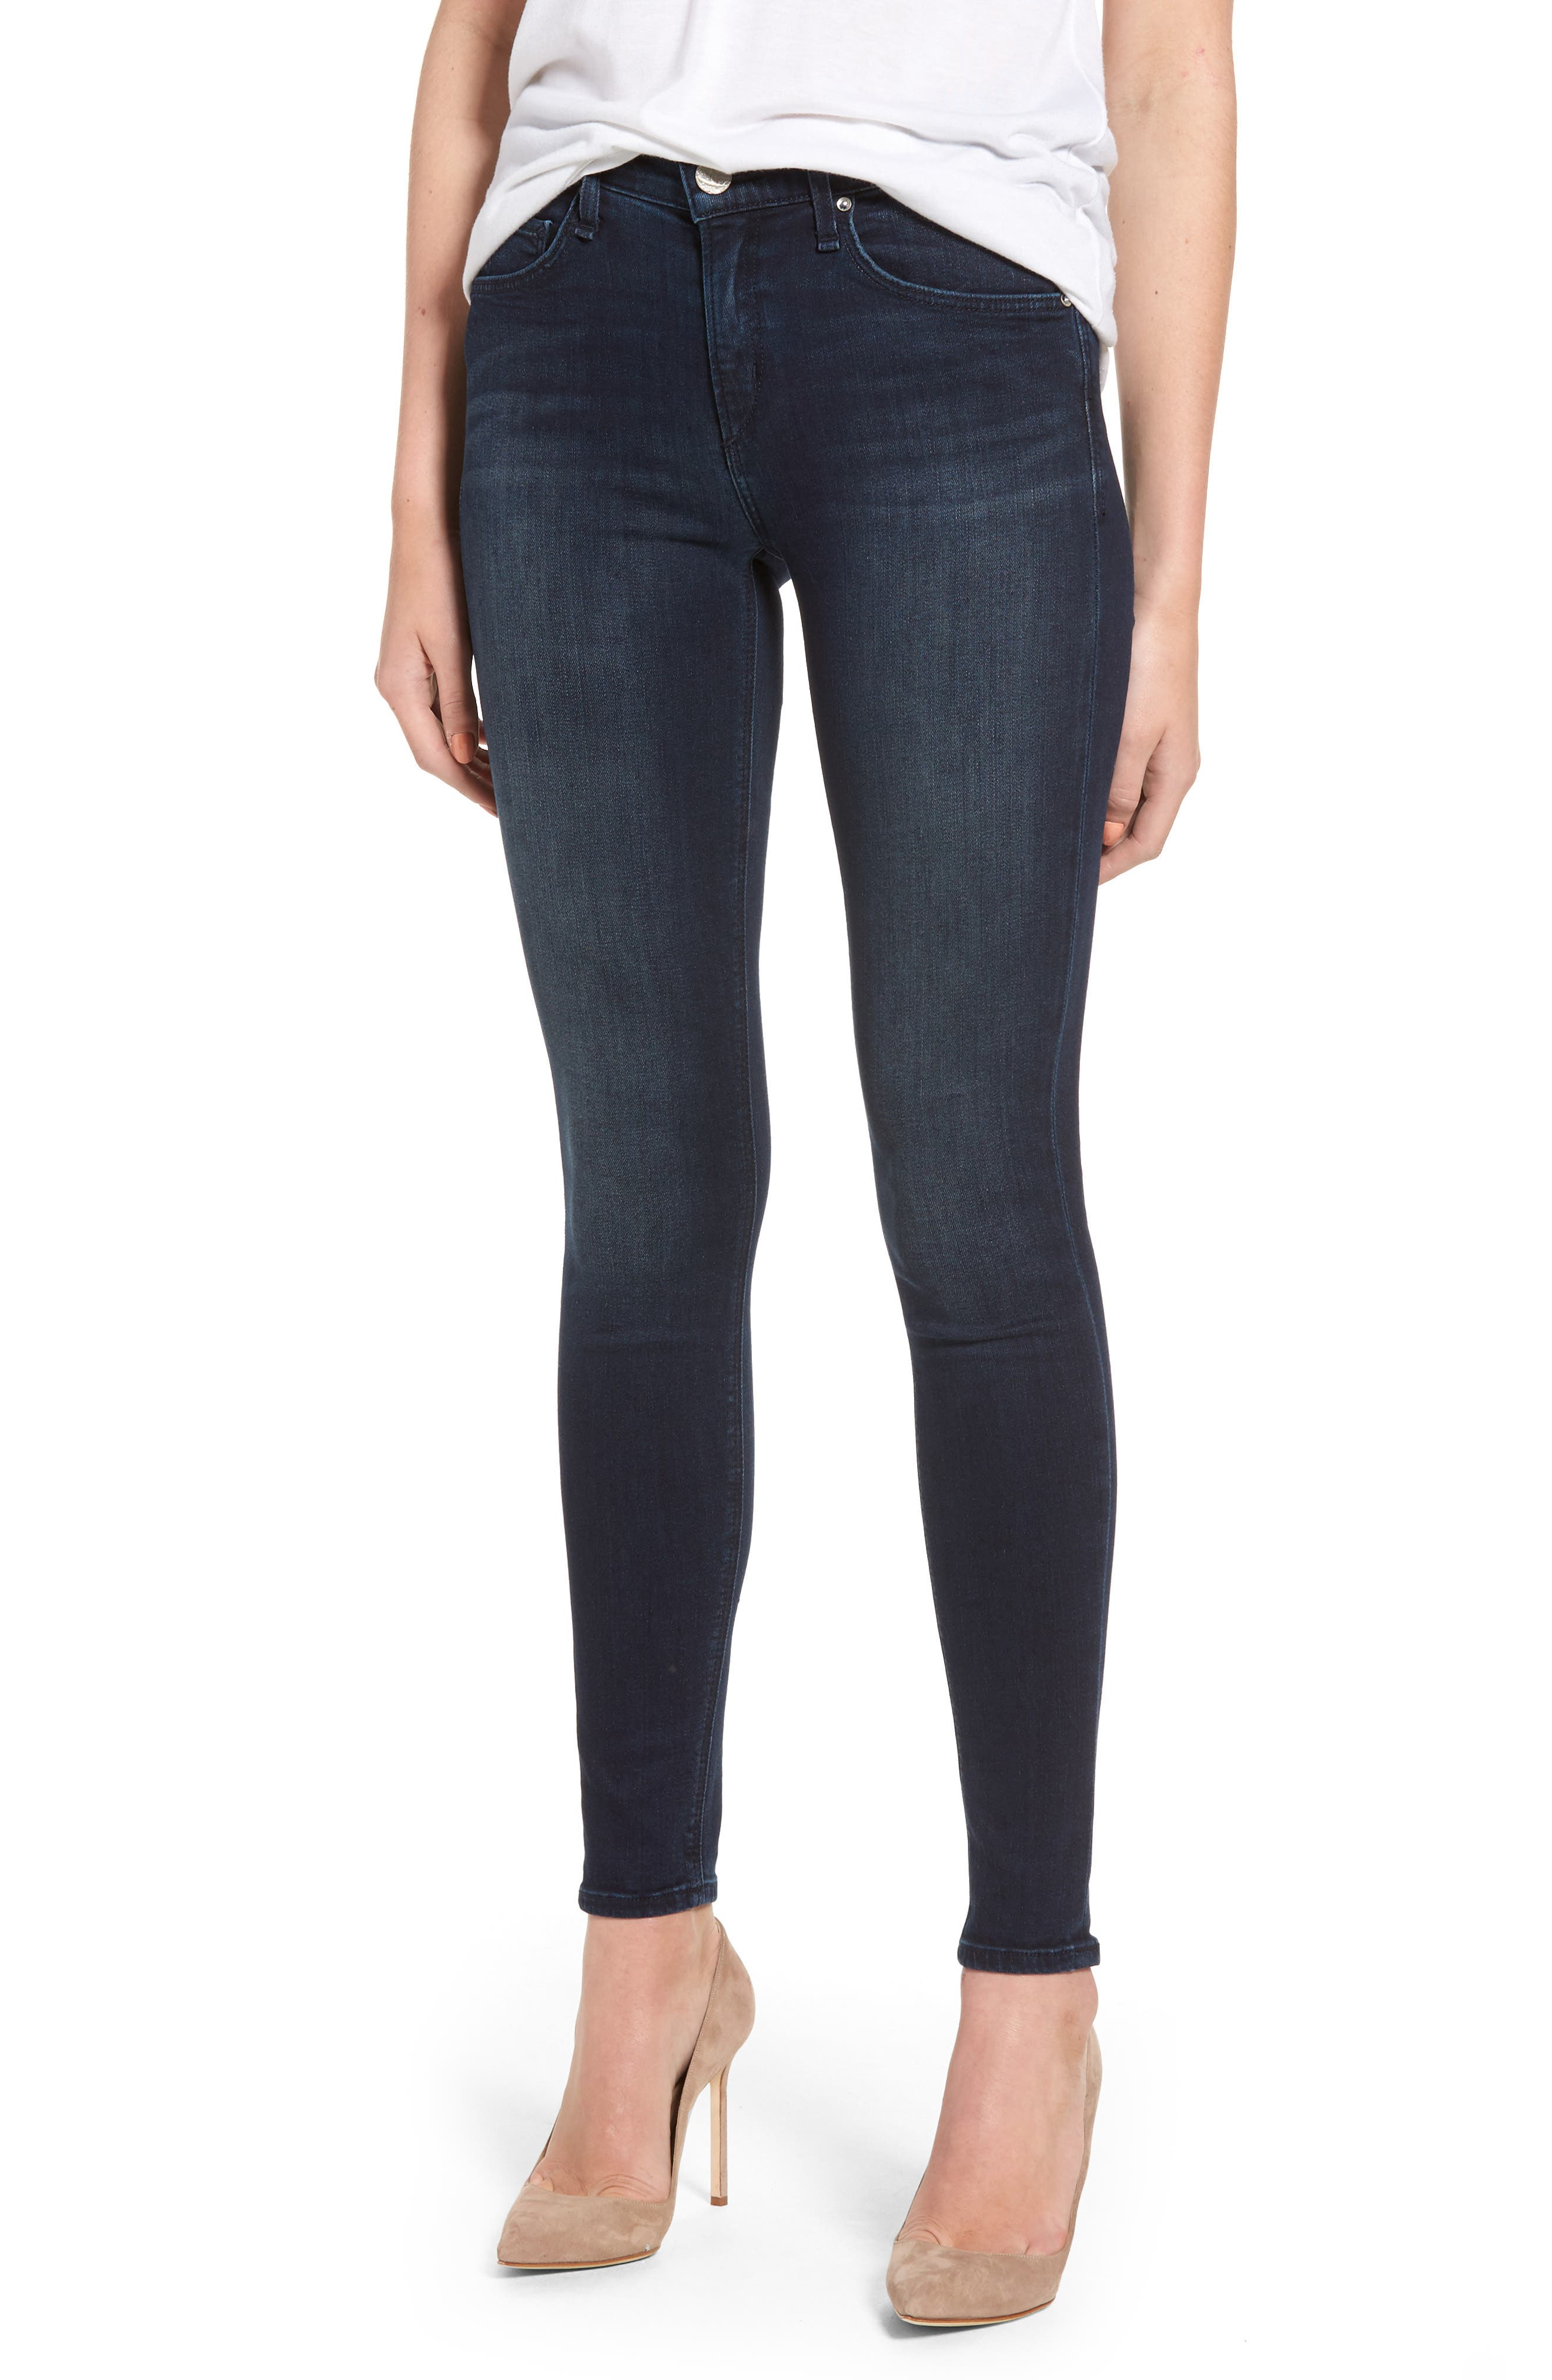 Newton Skinny Jeans,                         Main,                         color, Splash